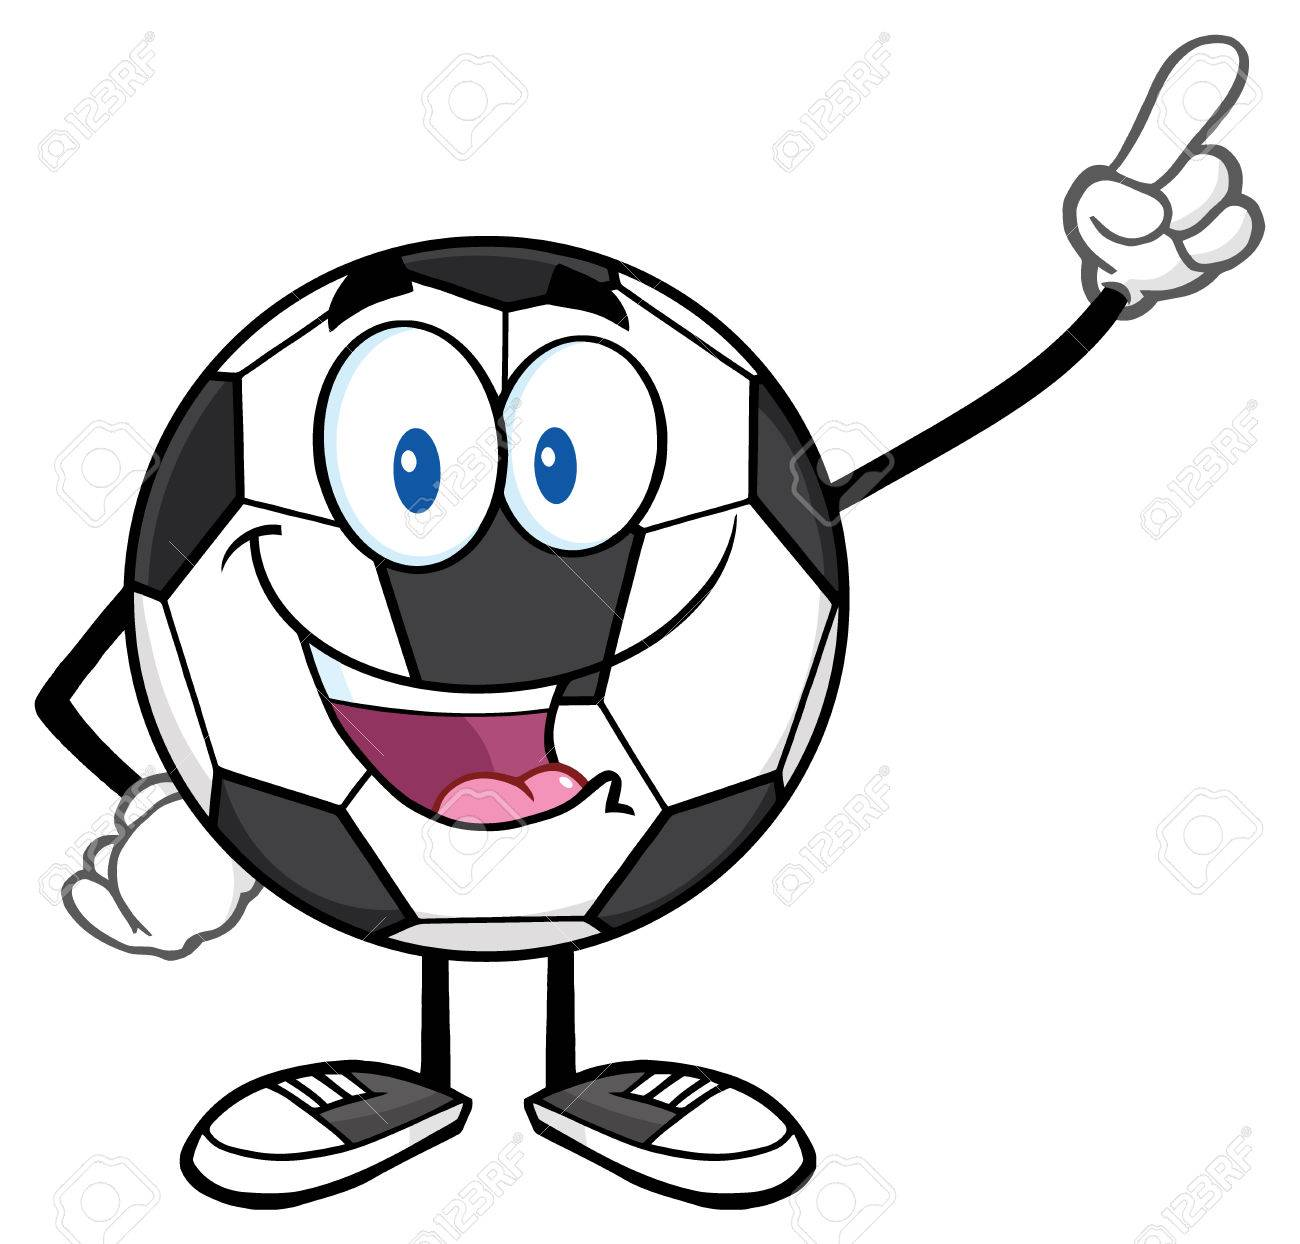 Happy Soccer Ball Cartoon Mascot Character Pointing Stock Photo Picture And Royalty Free Image Image 59848865